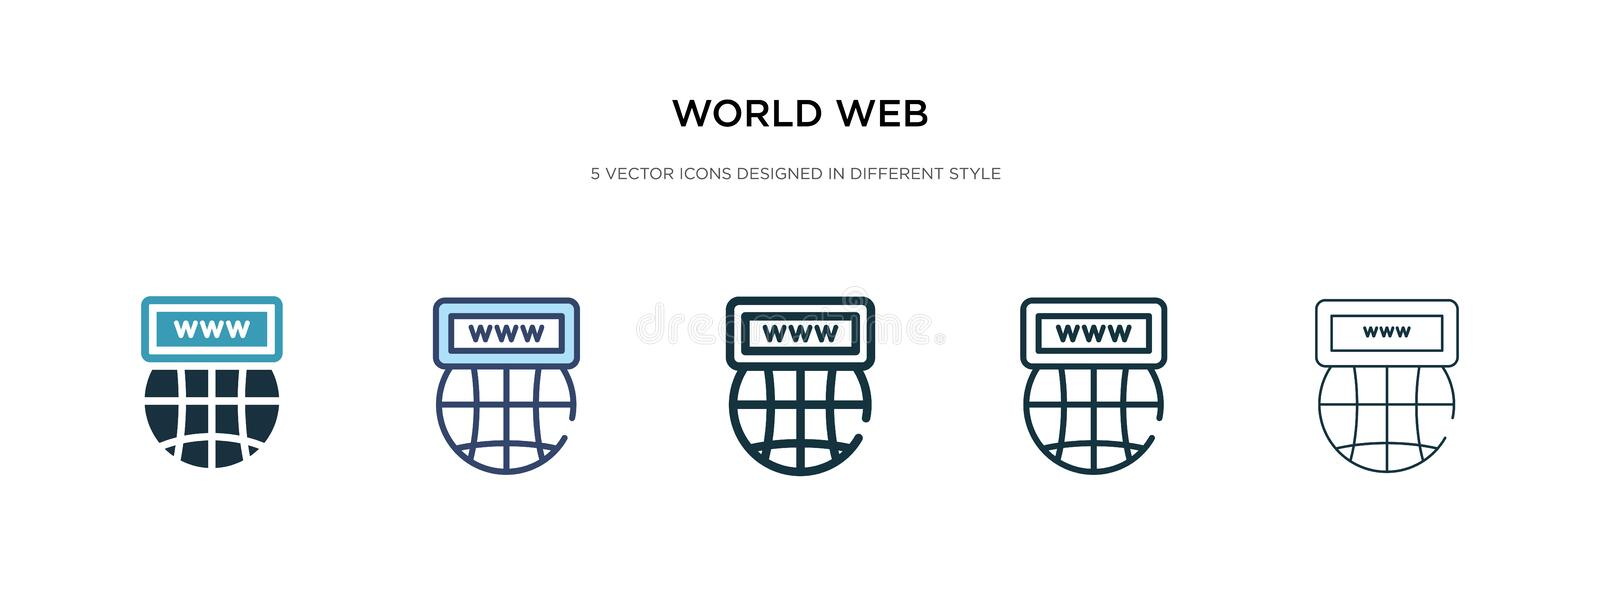 World web icon in different style vector illustration. two colored and black world web vector icons designed in filled, outline, stock illustration